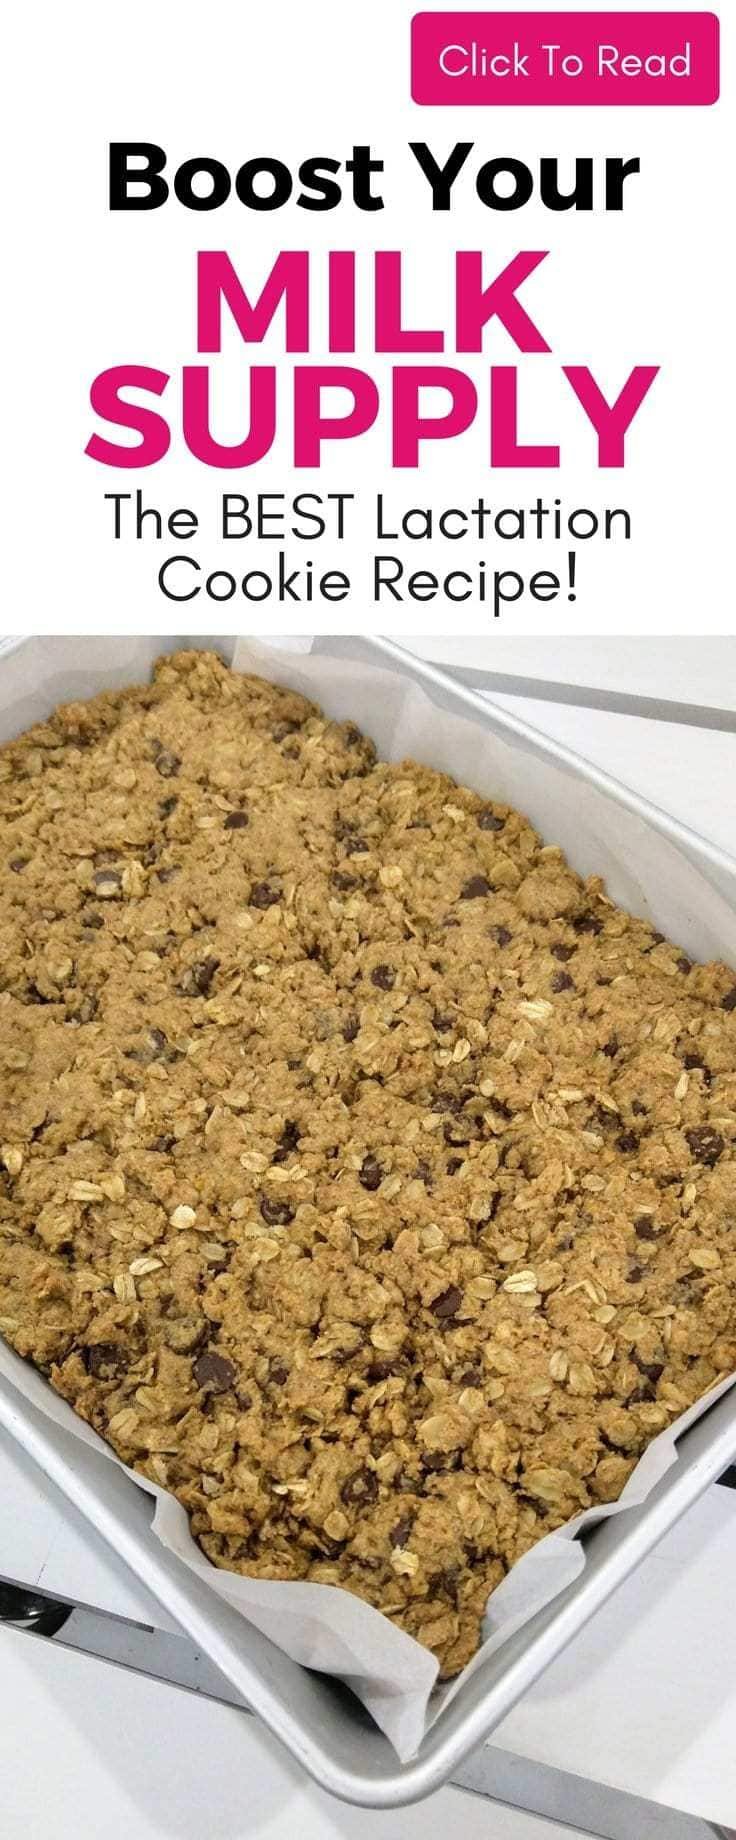 Easy lactation cookies that your whole house will love! Not JUST for breastfeeding moms! So yummy but they help increase milk supply too! Easy lactation cookies recipe.